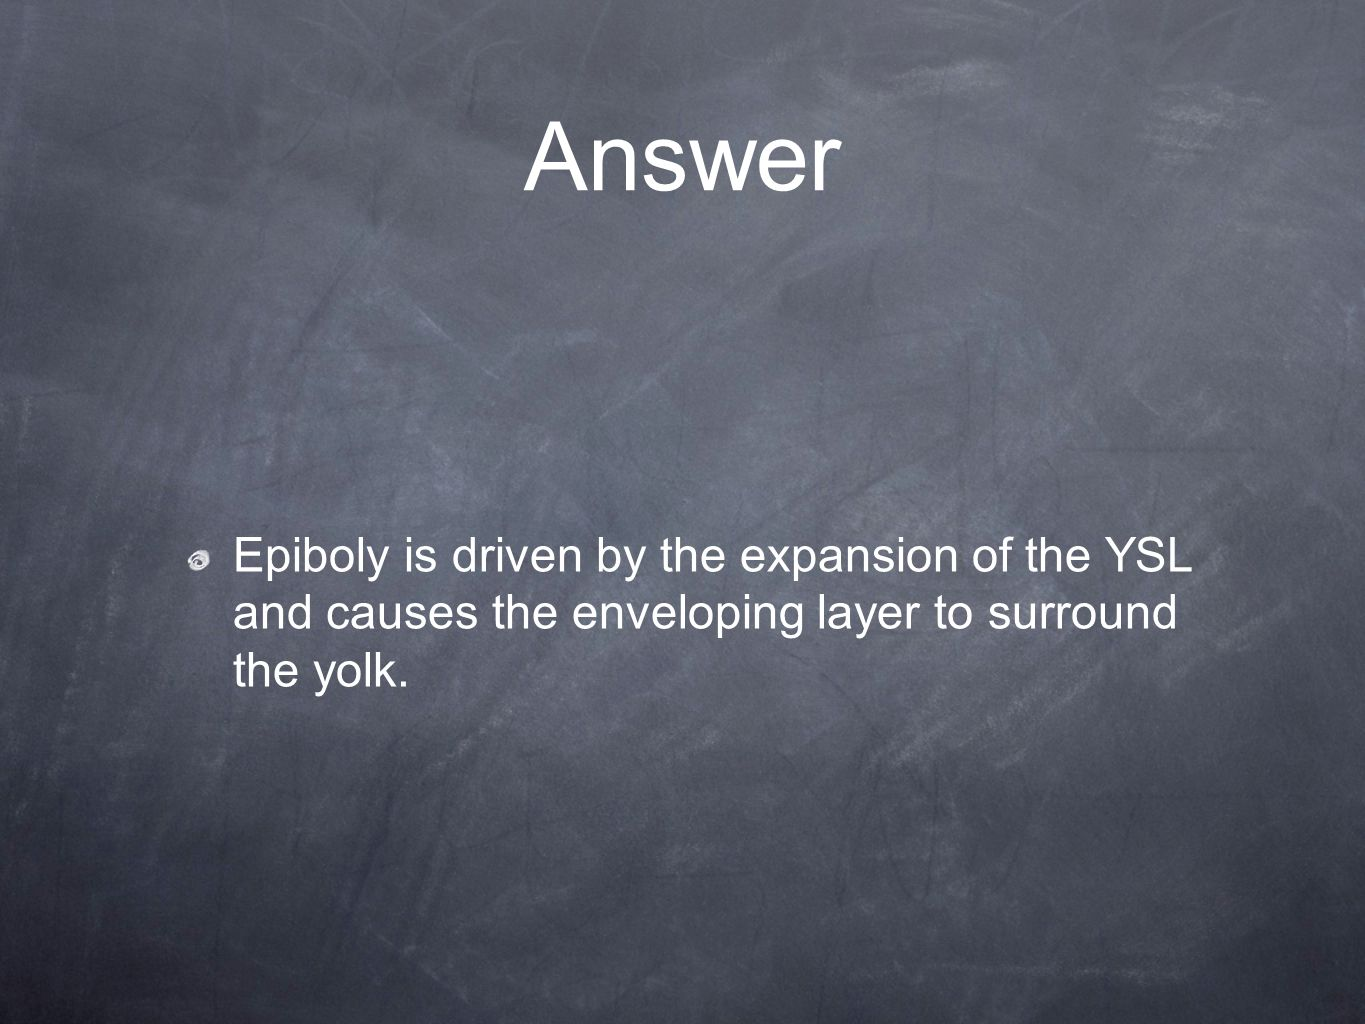 Answer Epiboly is driven by the expansion of the YSL and causes the enveloping layer to surround the yolk.